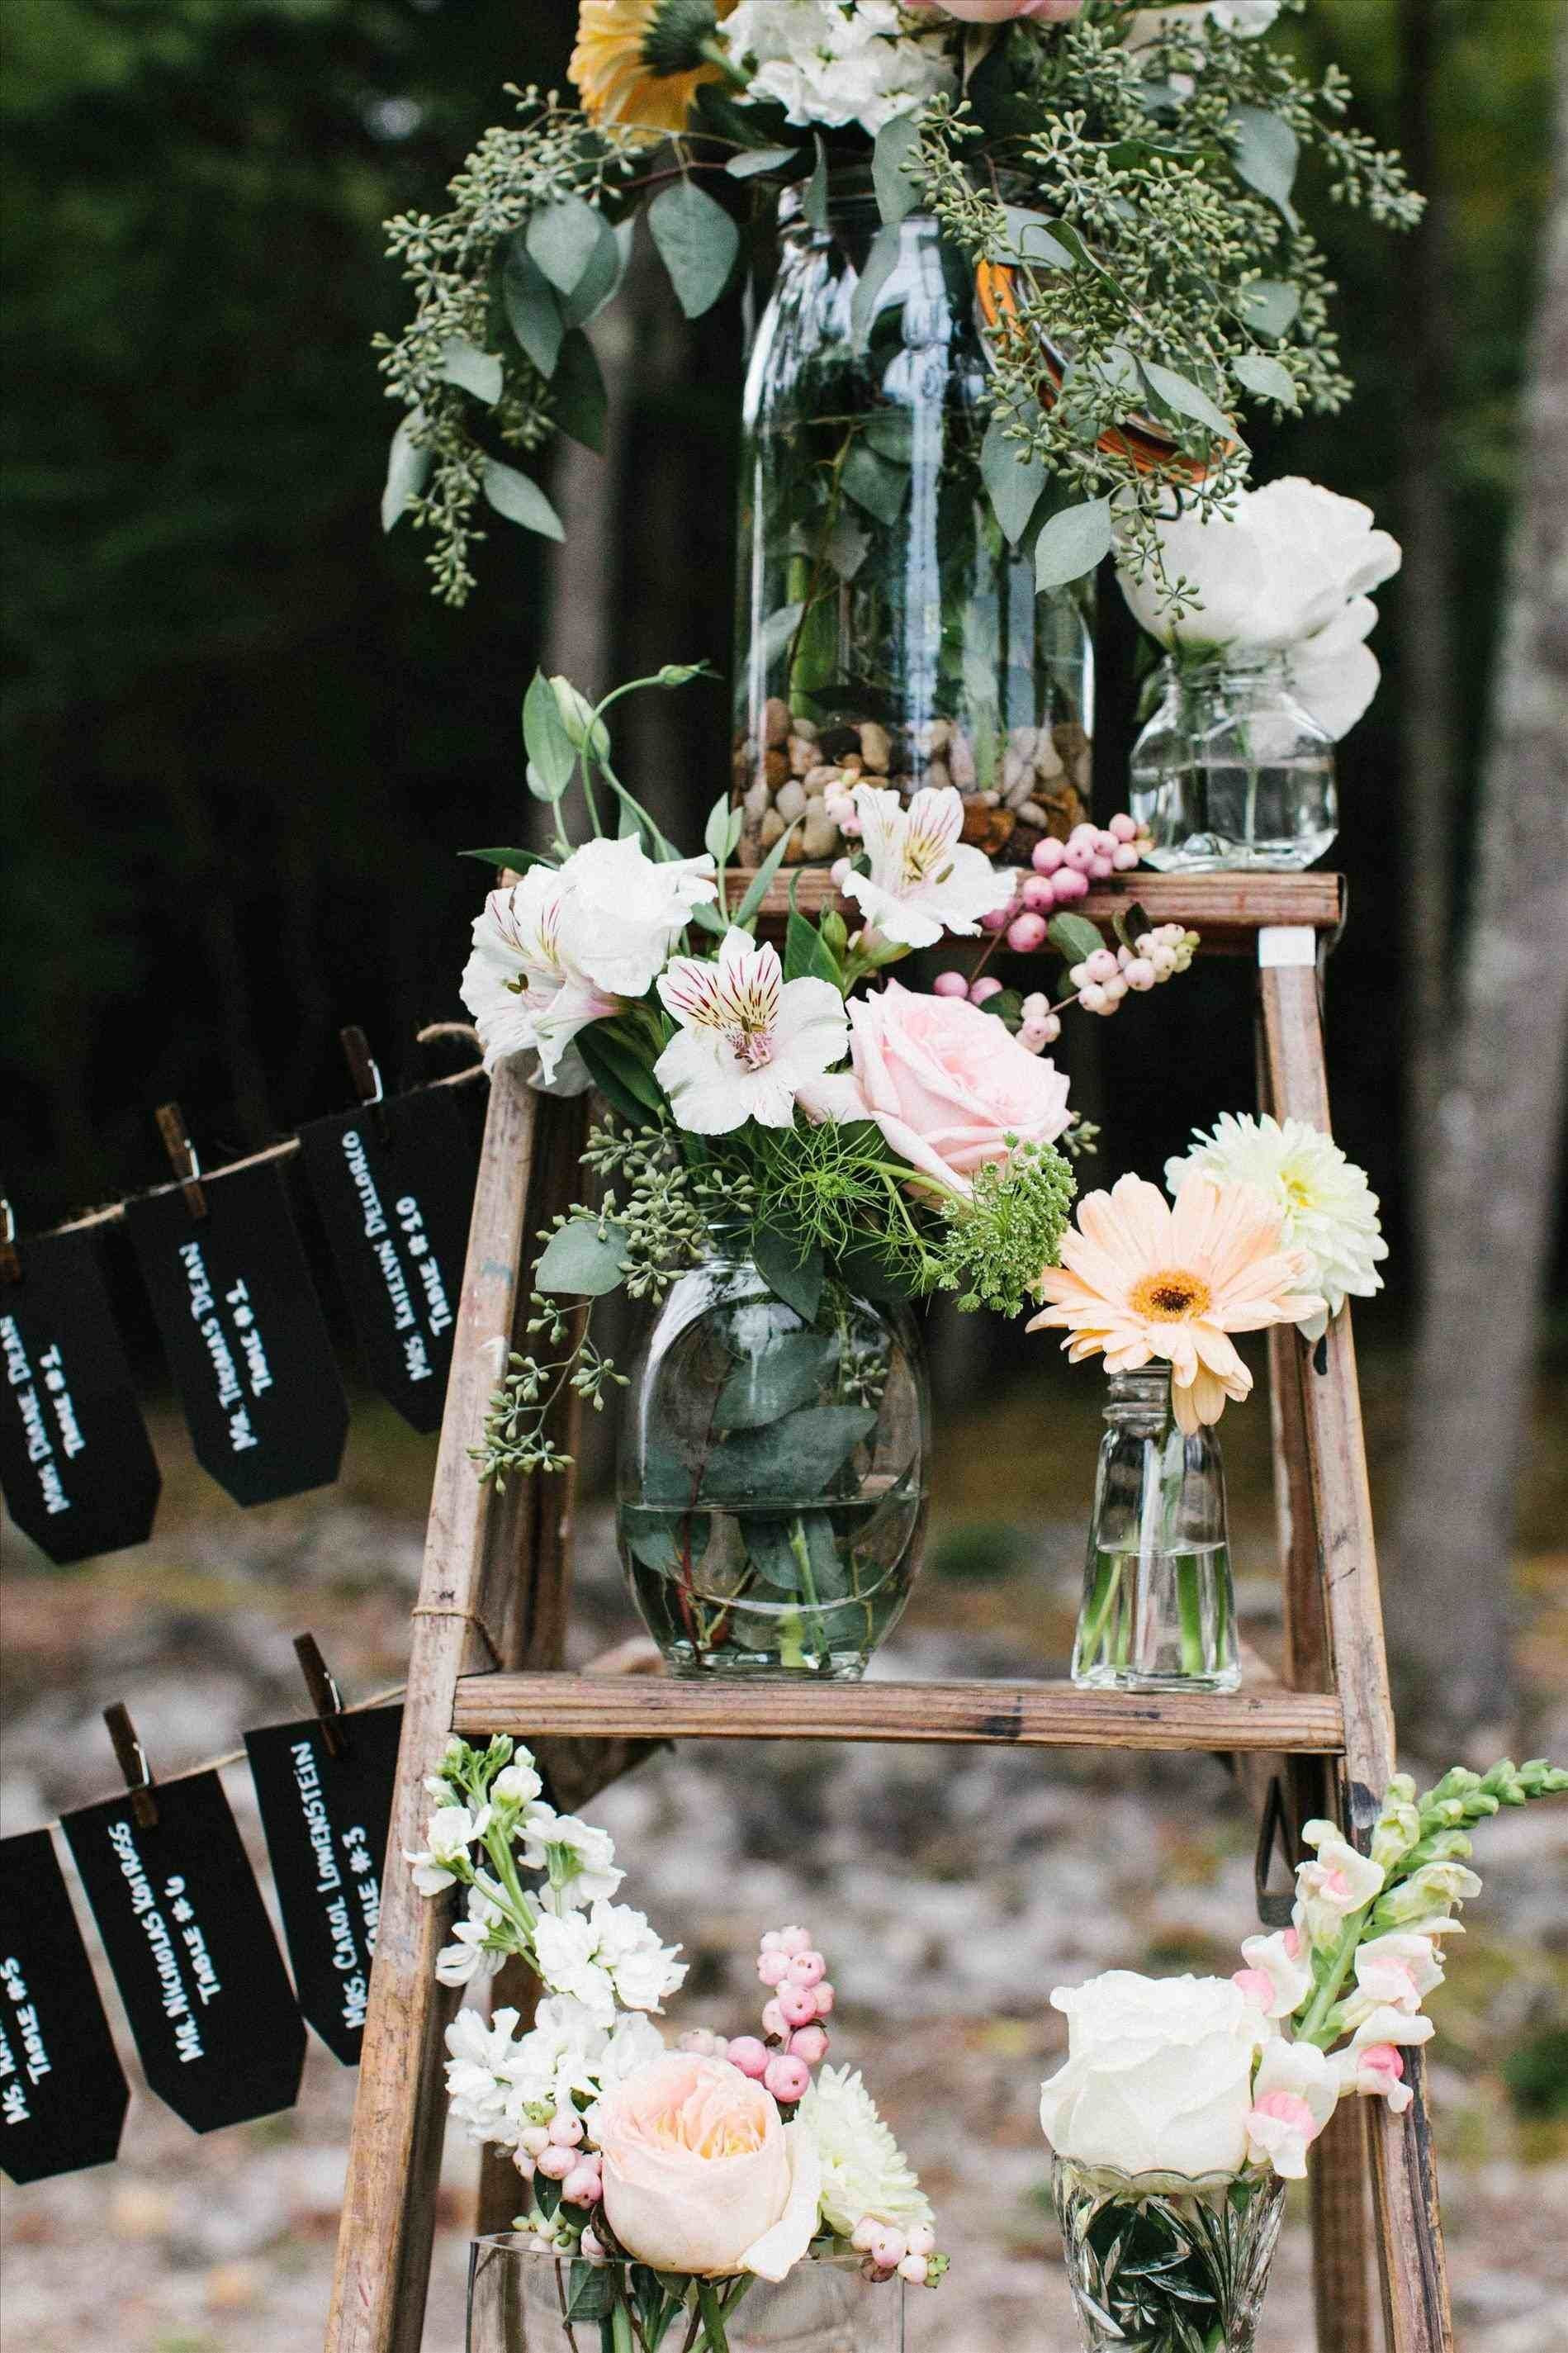 17 Stunning Cheap Clear Vases for Weddings 2021 free download cheap clear vases for weddings of vintage weddings ideas lovely mirrored square vase 3h vases mirror for vintage weddings ideas awesome elegant vintage wedding decor home ideas pinterest of